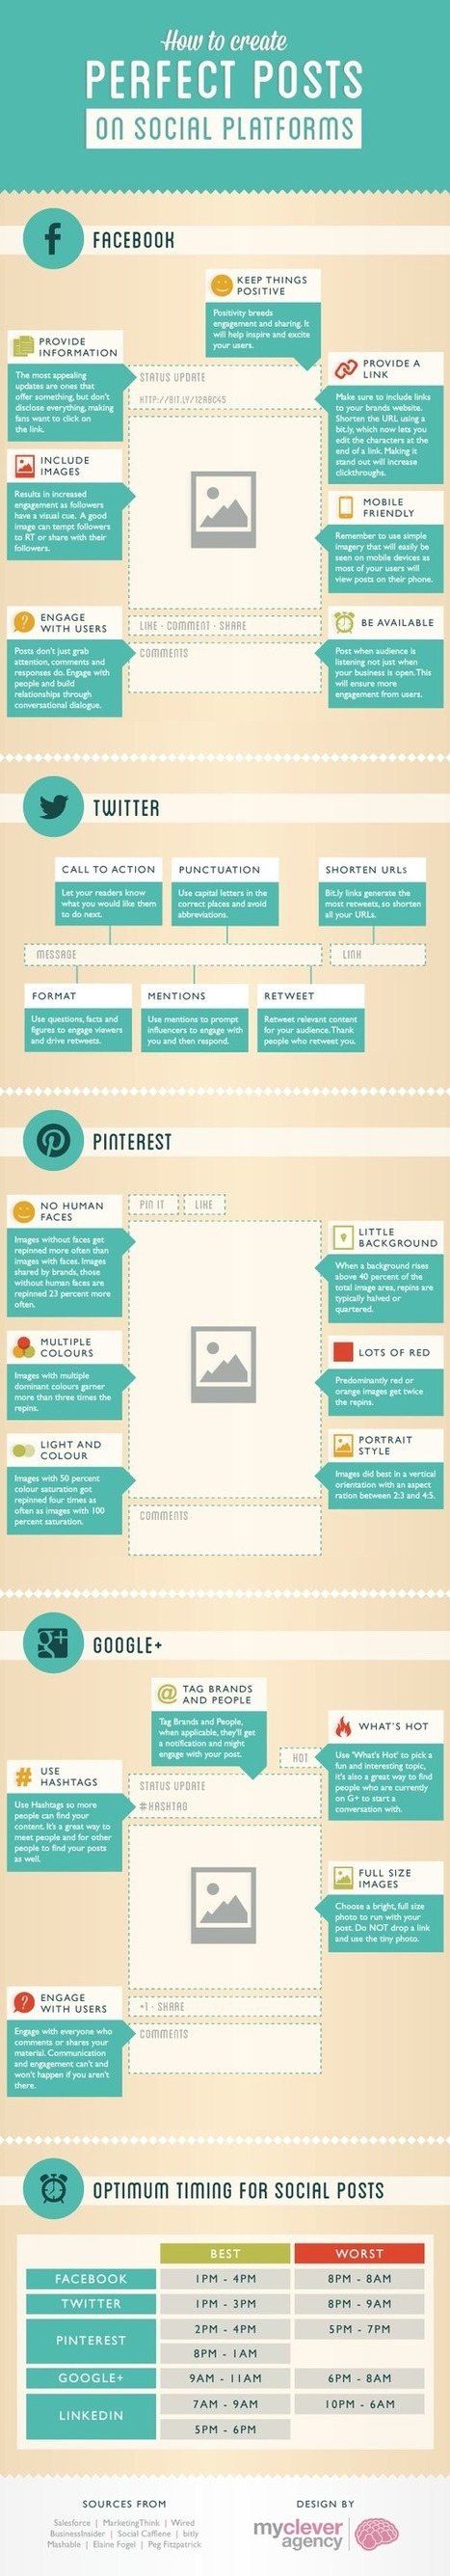 How to Create the Perfect Post on Social Media [INFOGRAPHIC] | Wepyirang | Scoop.it